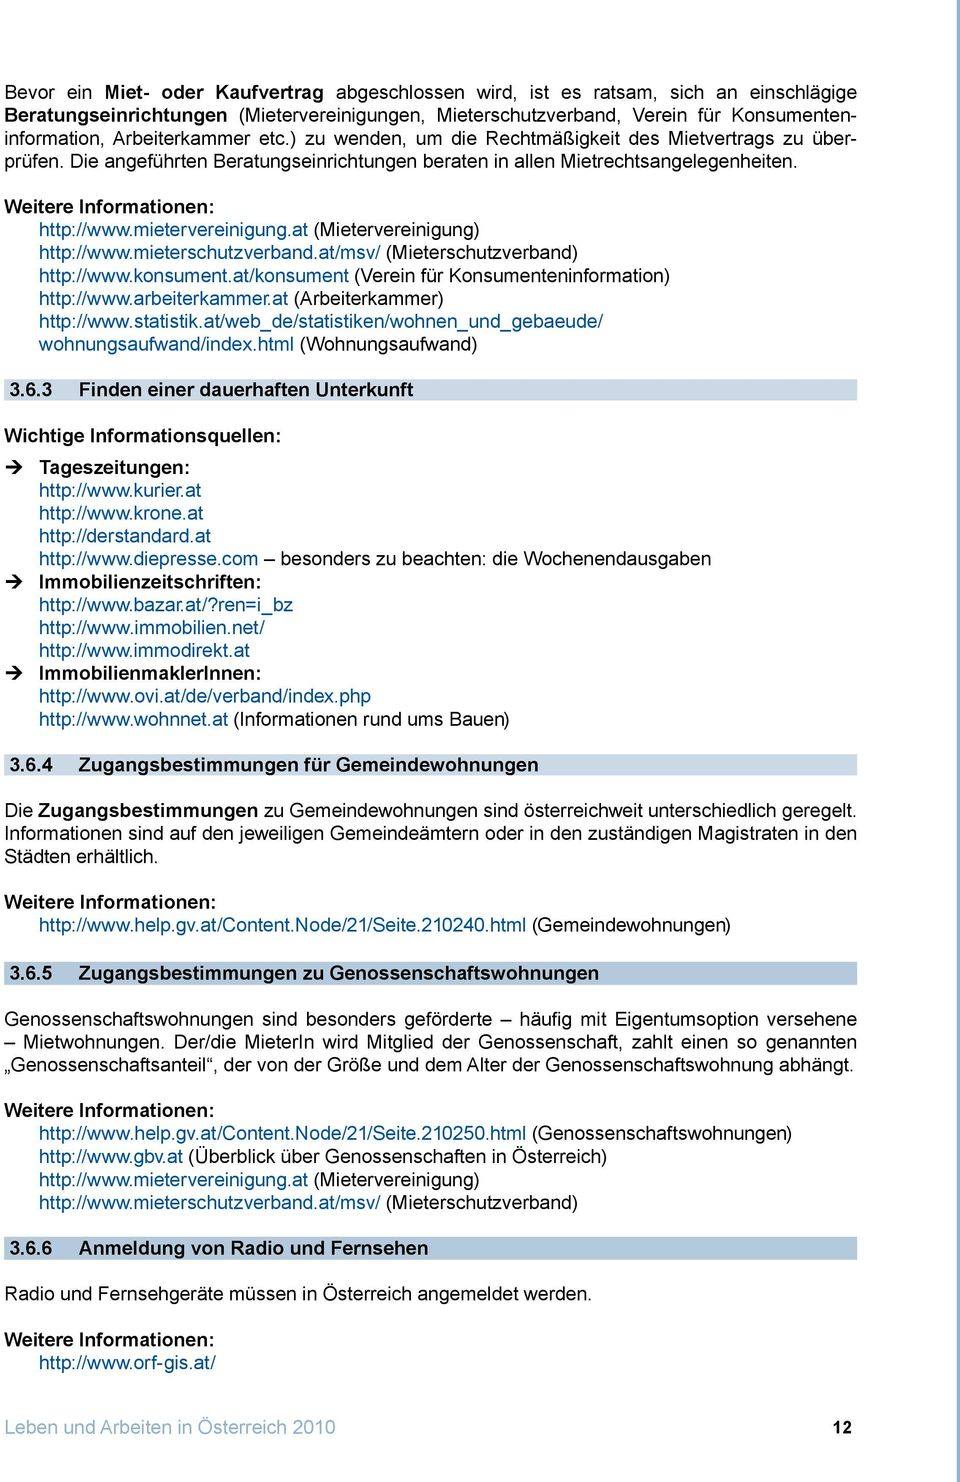 at (Mietervereinigung) http://www.mieterschutzverband.at/msv/ (Mieterschutzverband) http://www.konsument.at/konsument (Verein für Konsumenteninformation) http://www.arbeiterkammer.